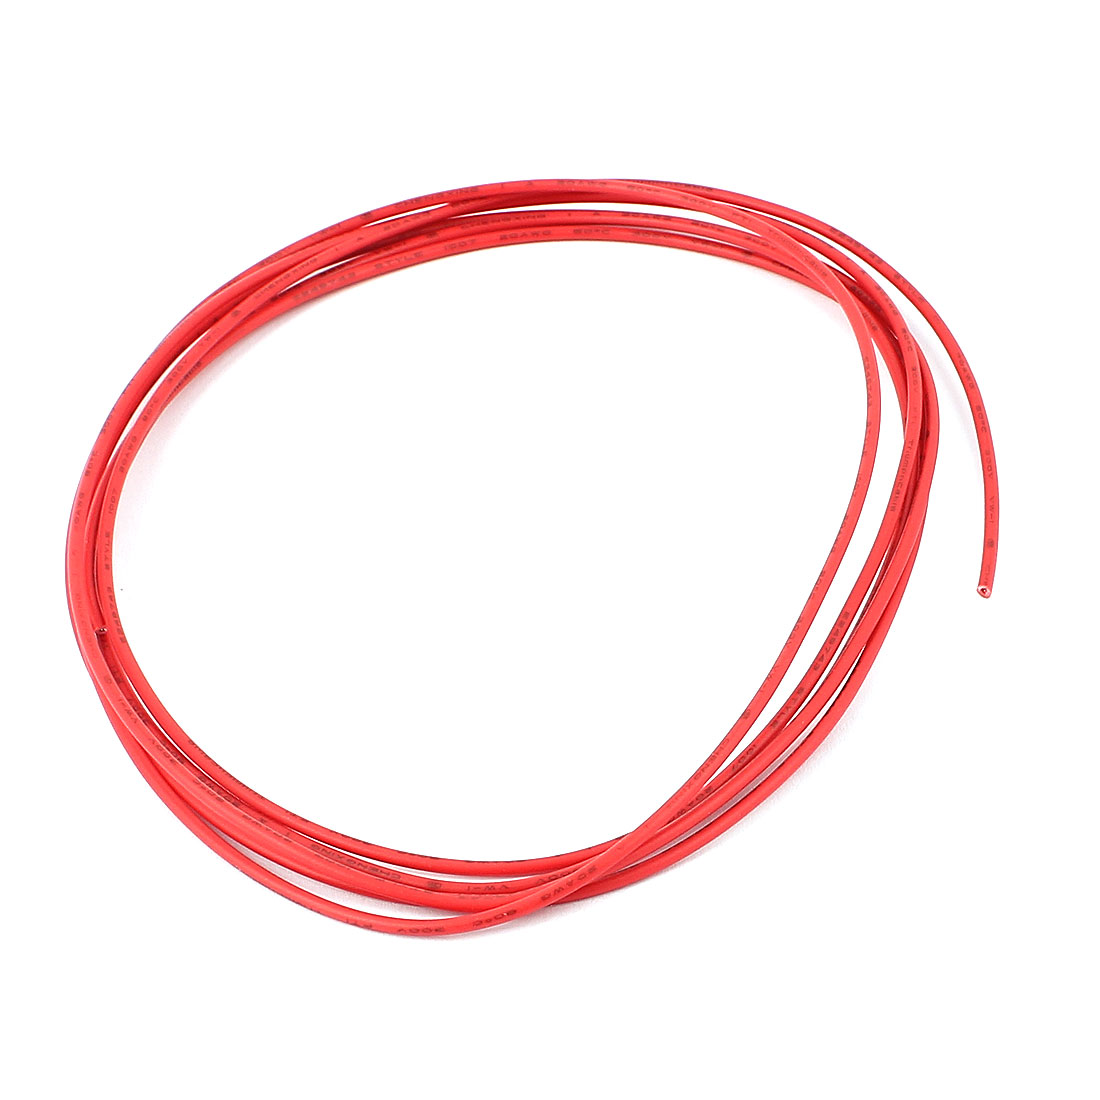 2M 20AWG Electric Insulated Copper Core Flexible PVC Wire Cable Red